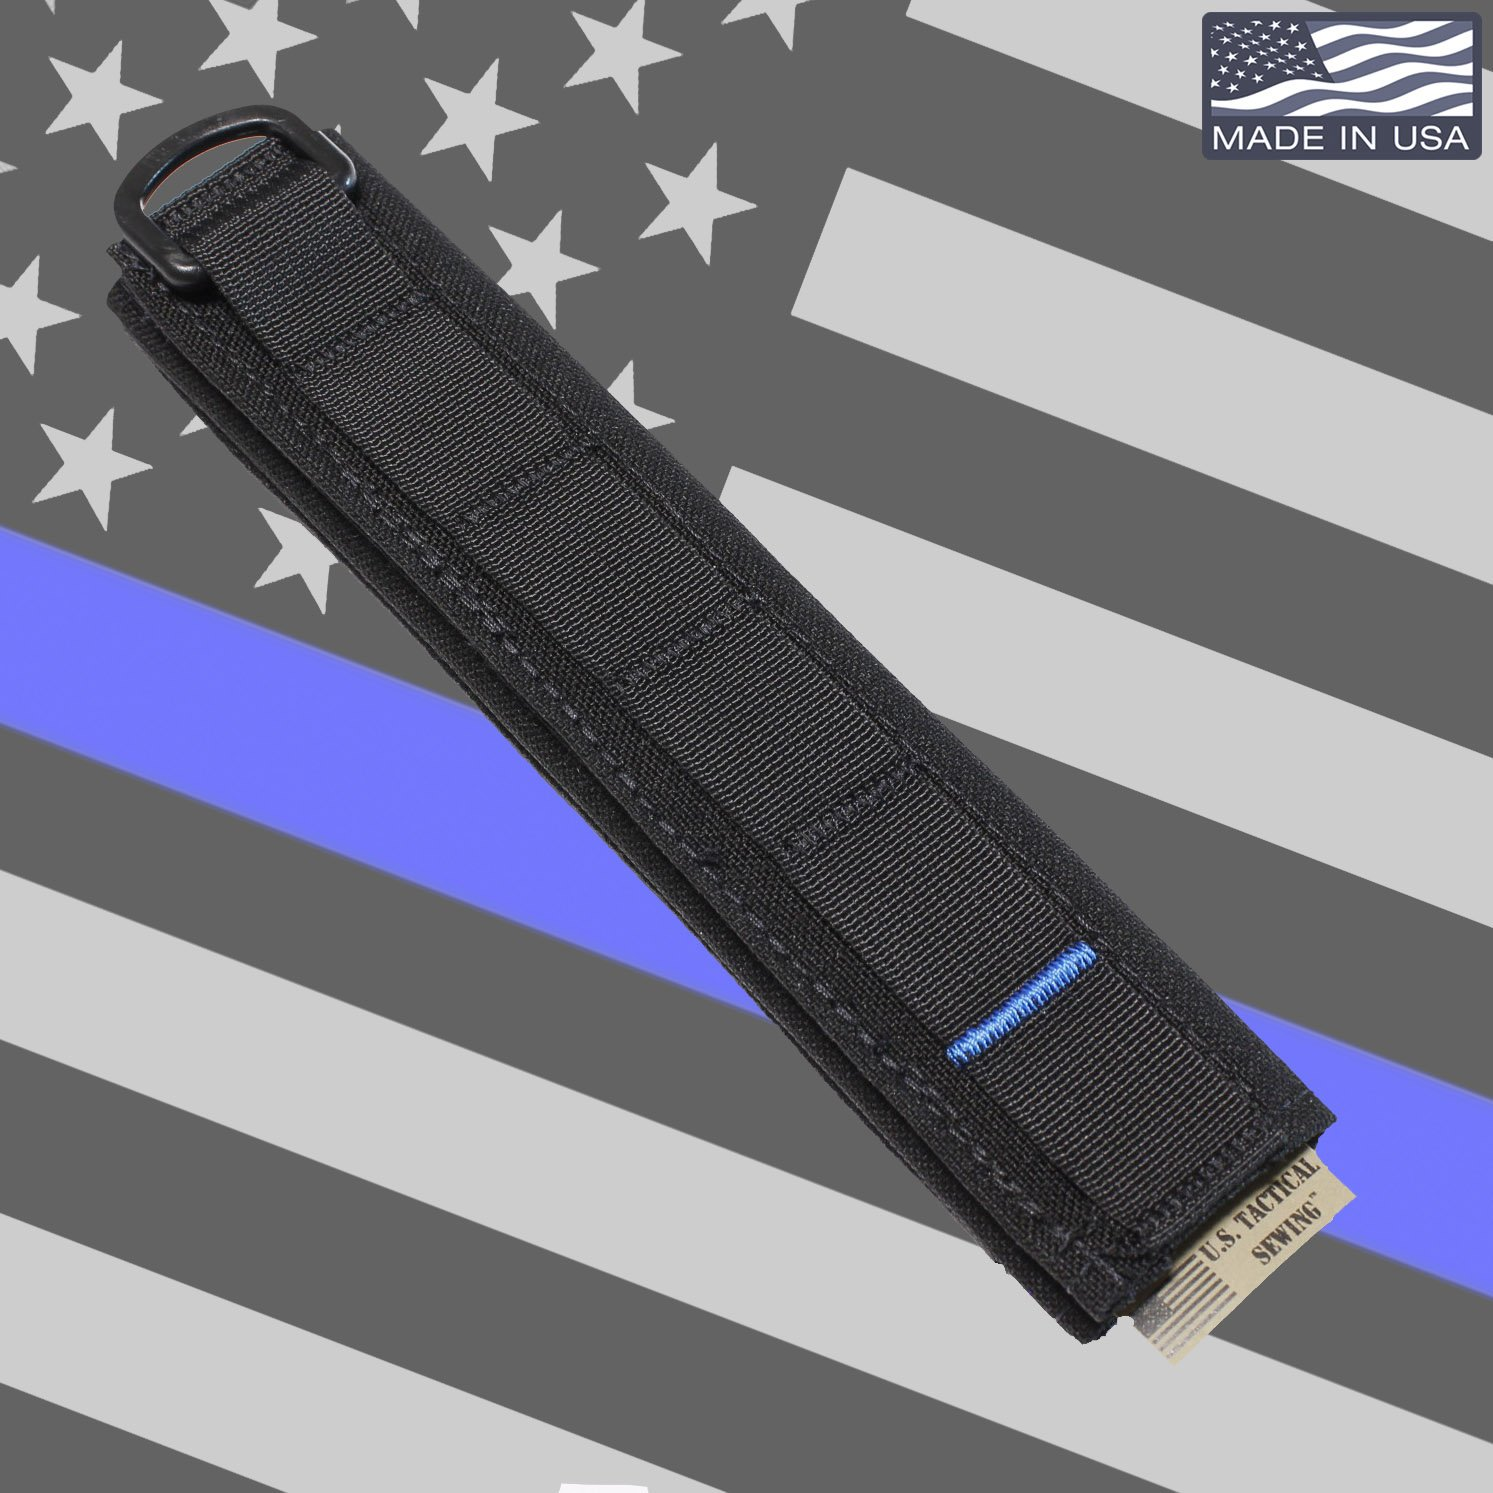 USTS Advanced Modular Headset Cover - Made in The USA (Thin Blue Line) by U.S. Tactical Sewing